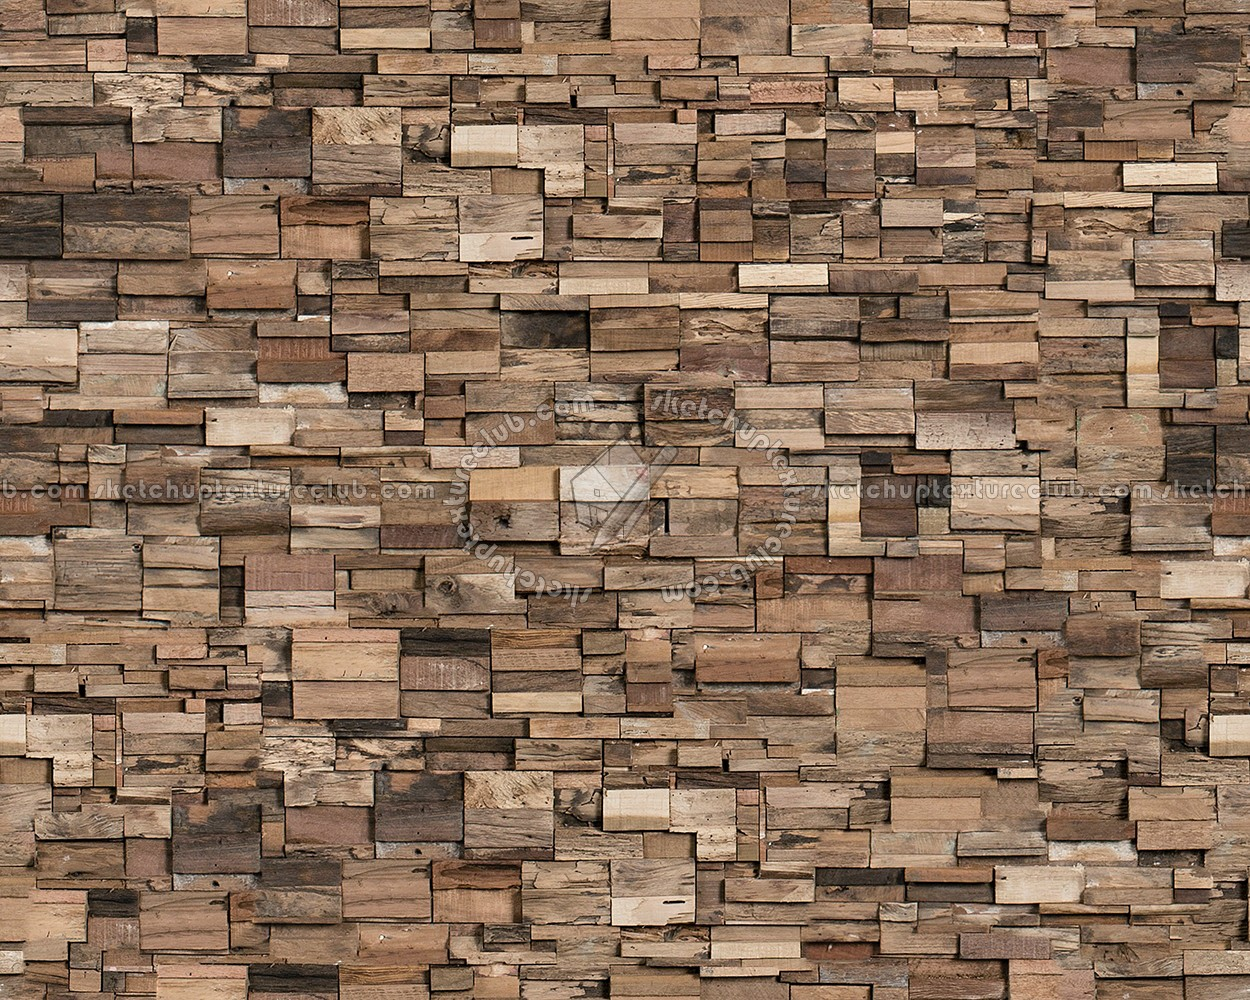 Best Texture For Walls Wood Wall Panels Texture Seamless 04565